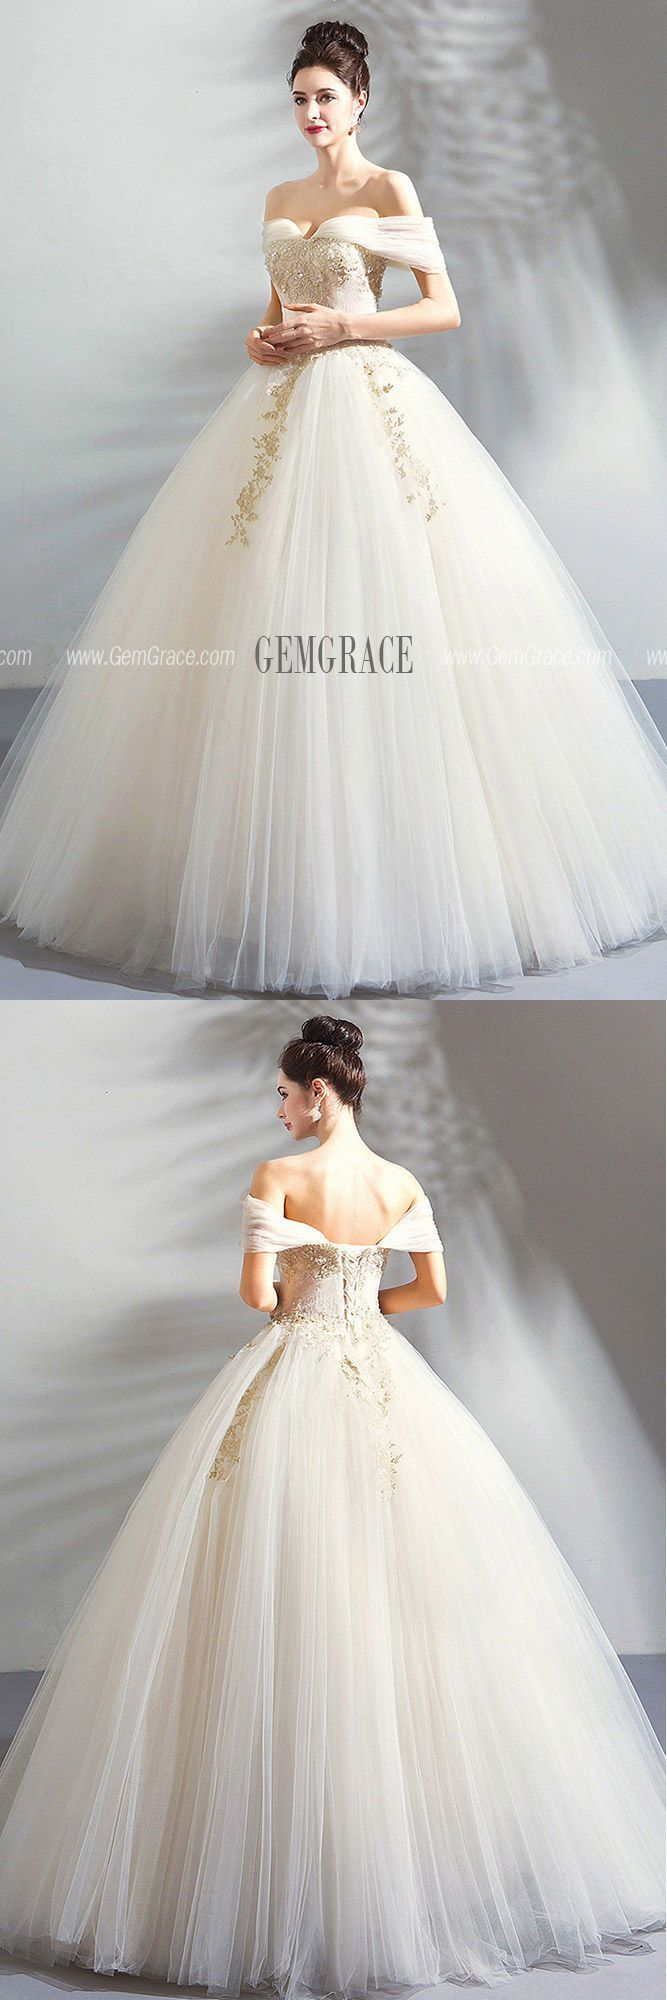 e0c6ebac9a7 Luxury Embroidery Beige Ball Gown Wedding Dress Princess With Off Shoulder  Wholesale  T69085 - GemGrace